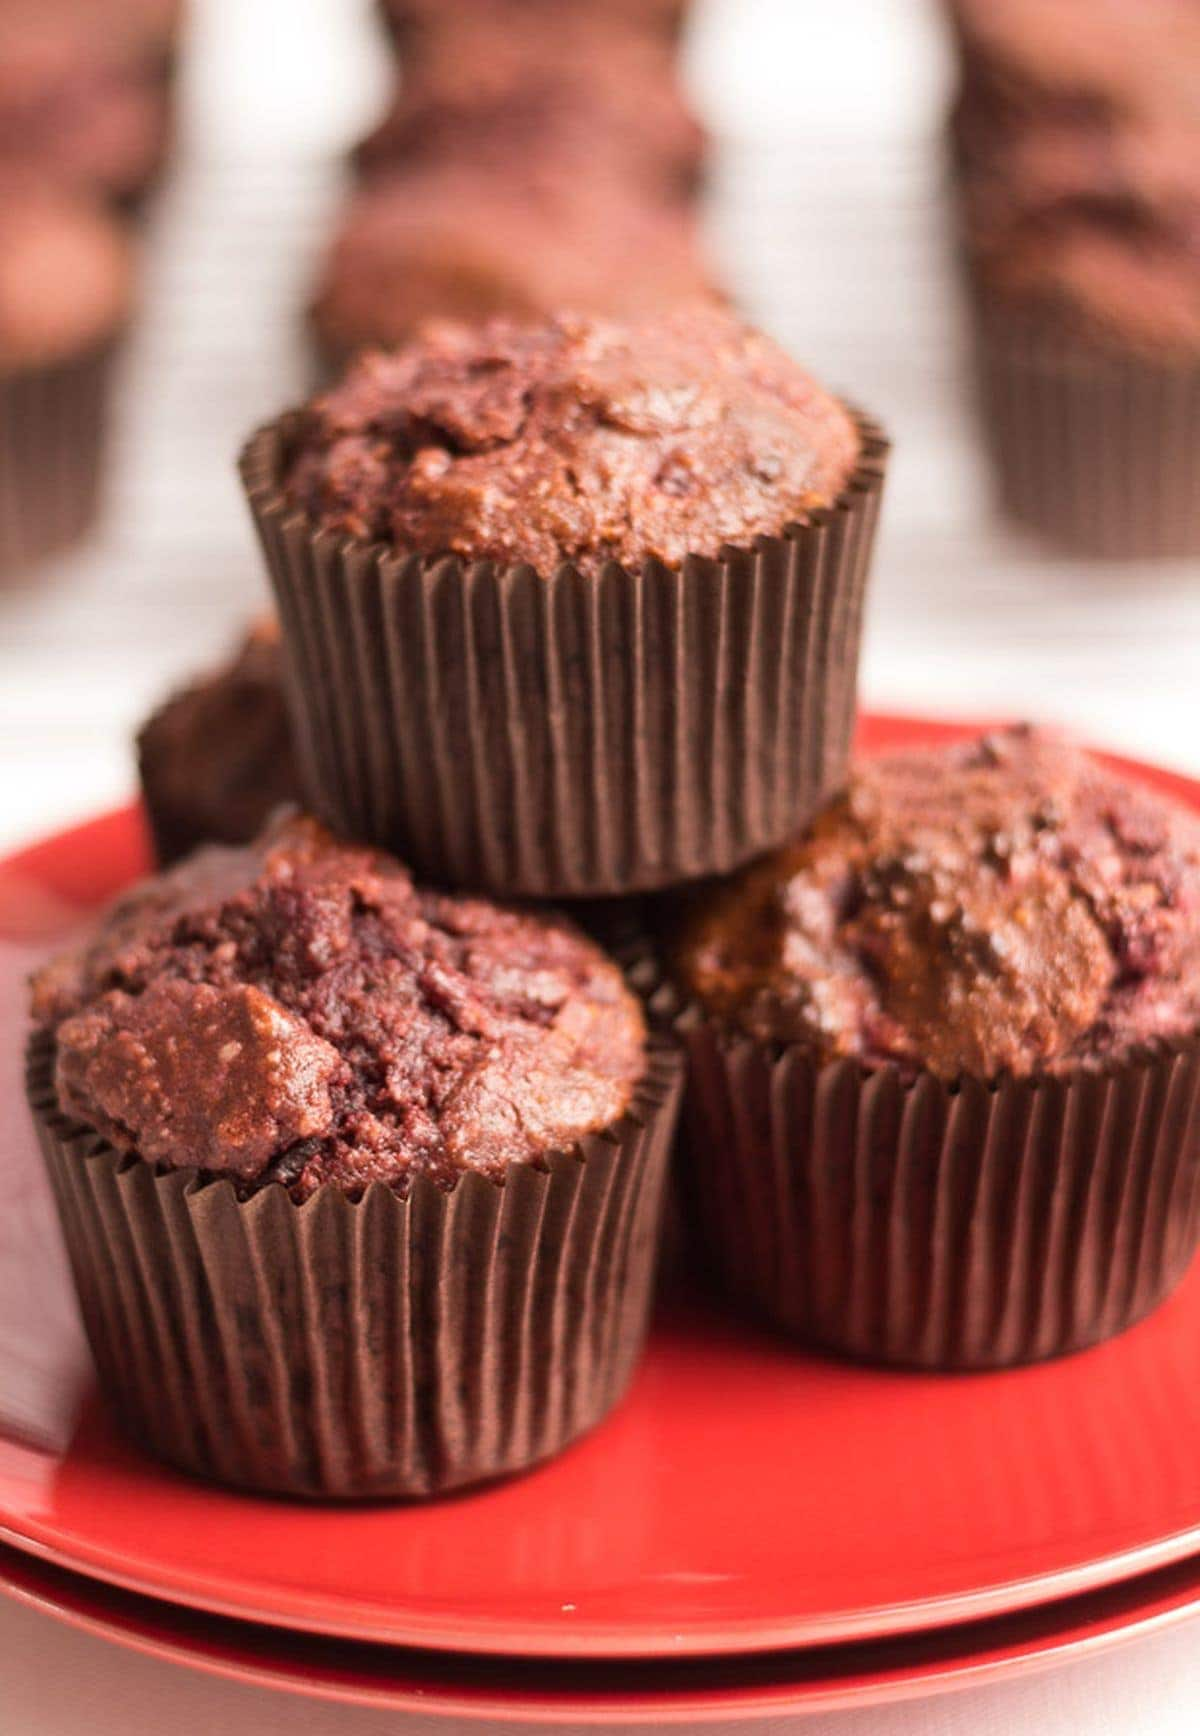 Three gluten free chocolate and beetroot muffins stacked on top of two plates.